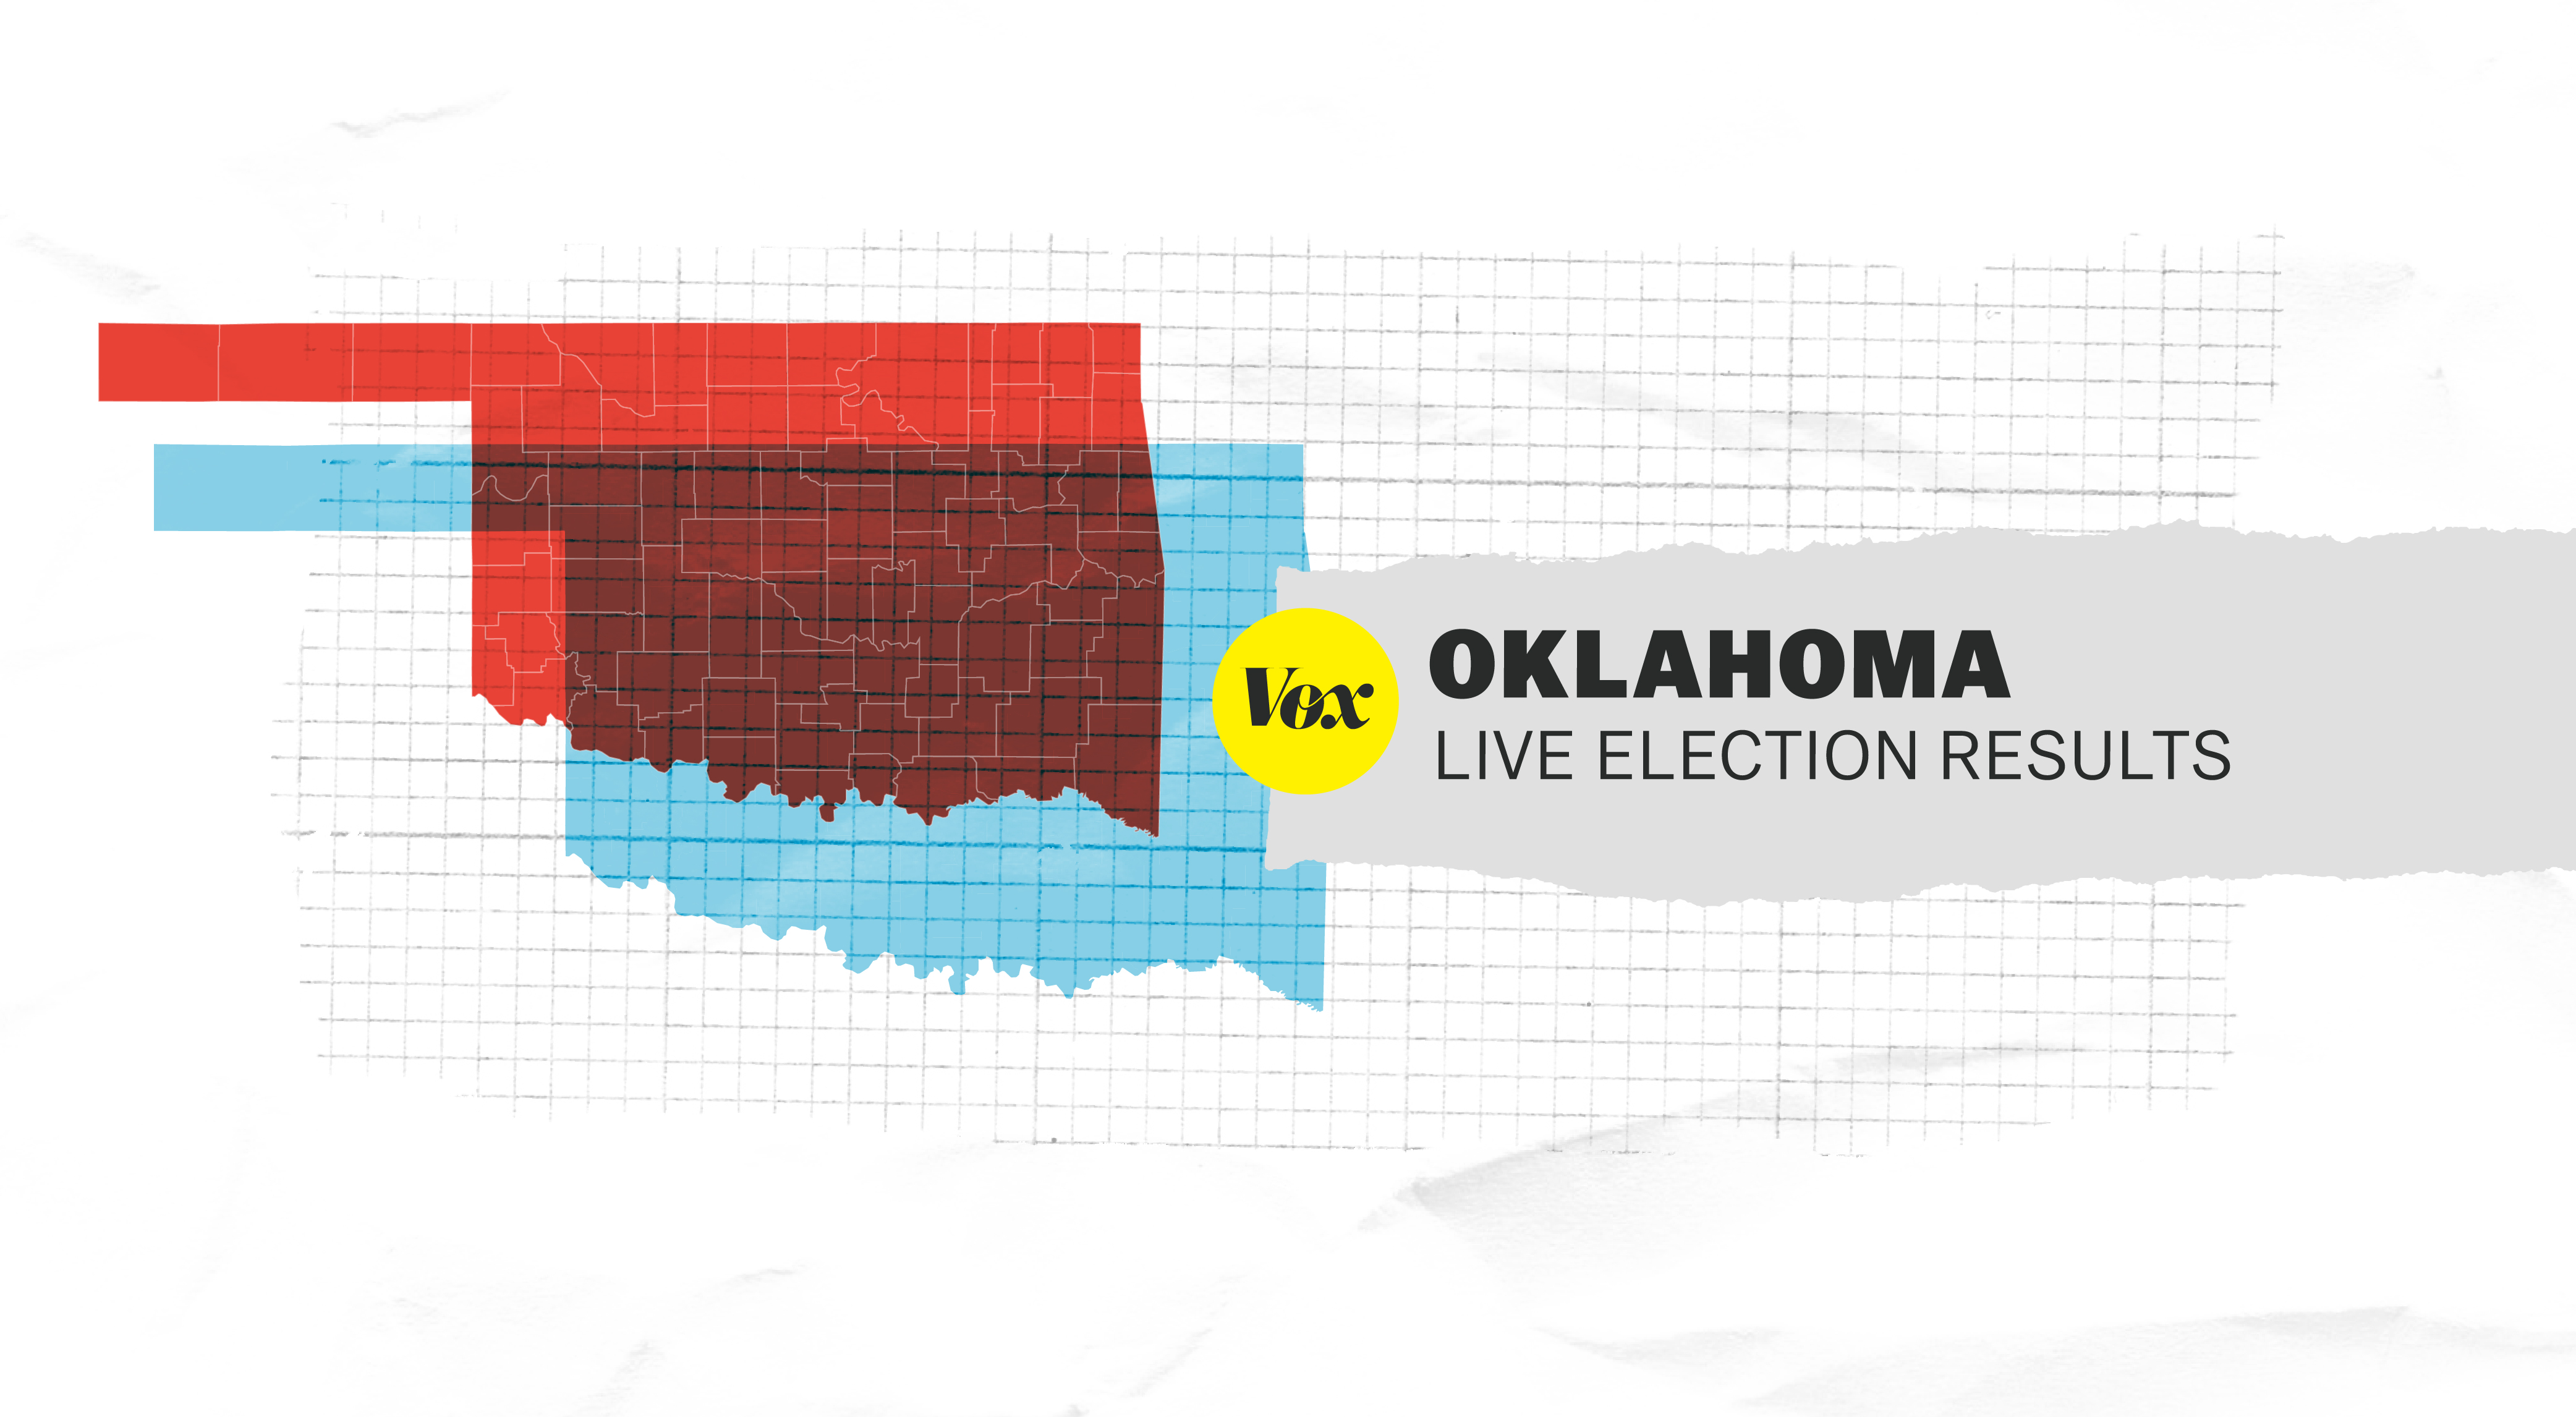 Oklahoma Live Election Results